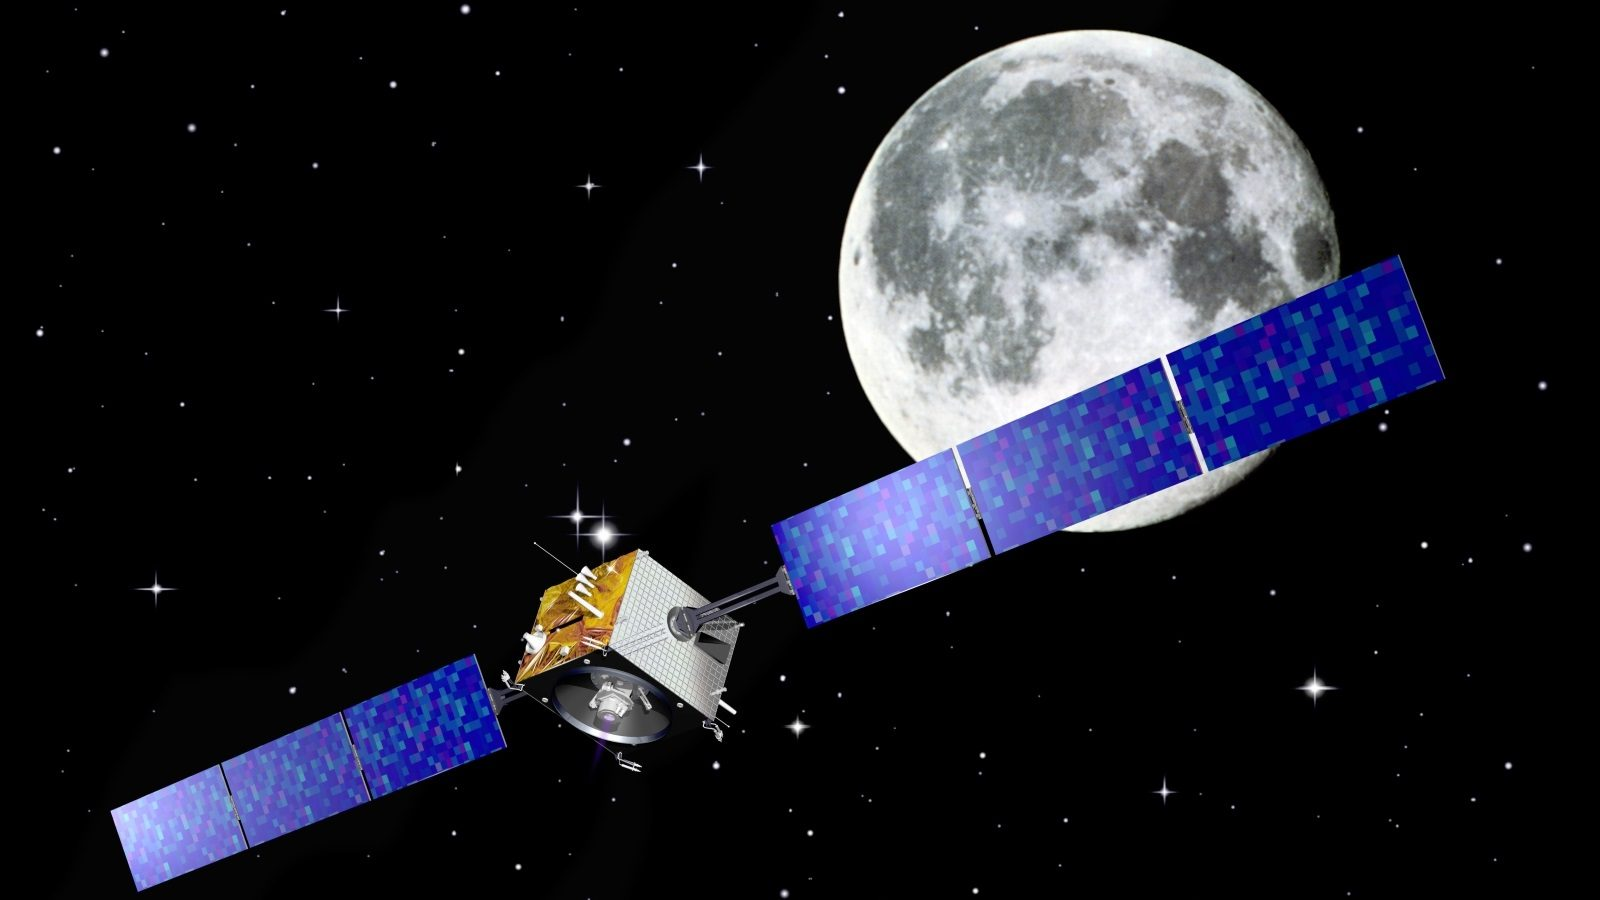 ESA's SMART-1 mission at the Moon